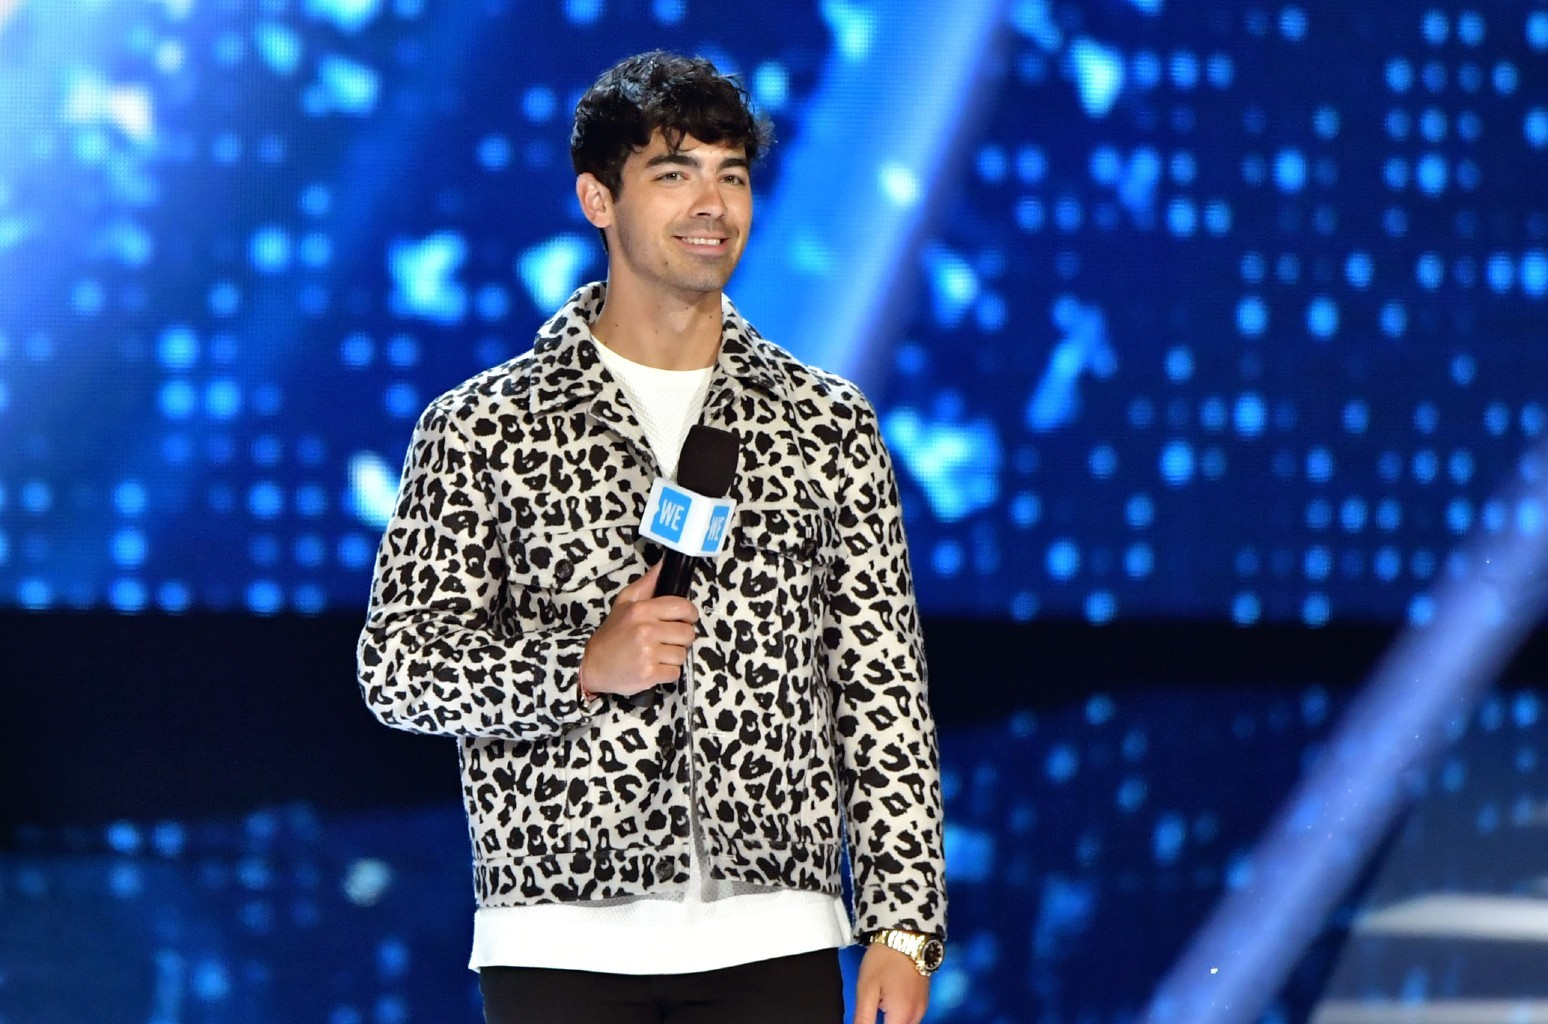 Joe Jonas Rolls Up His Sleeve for COVID-19 Vaccine on NBC Special